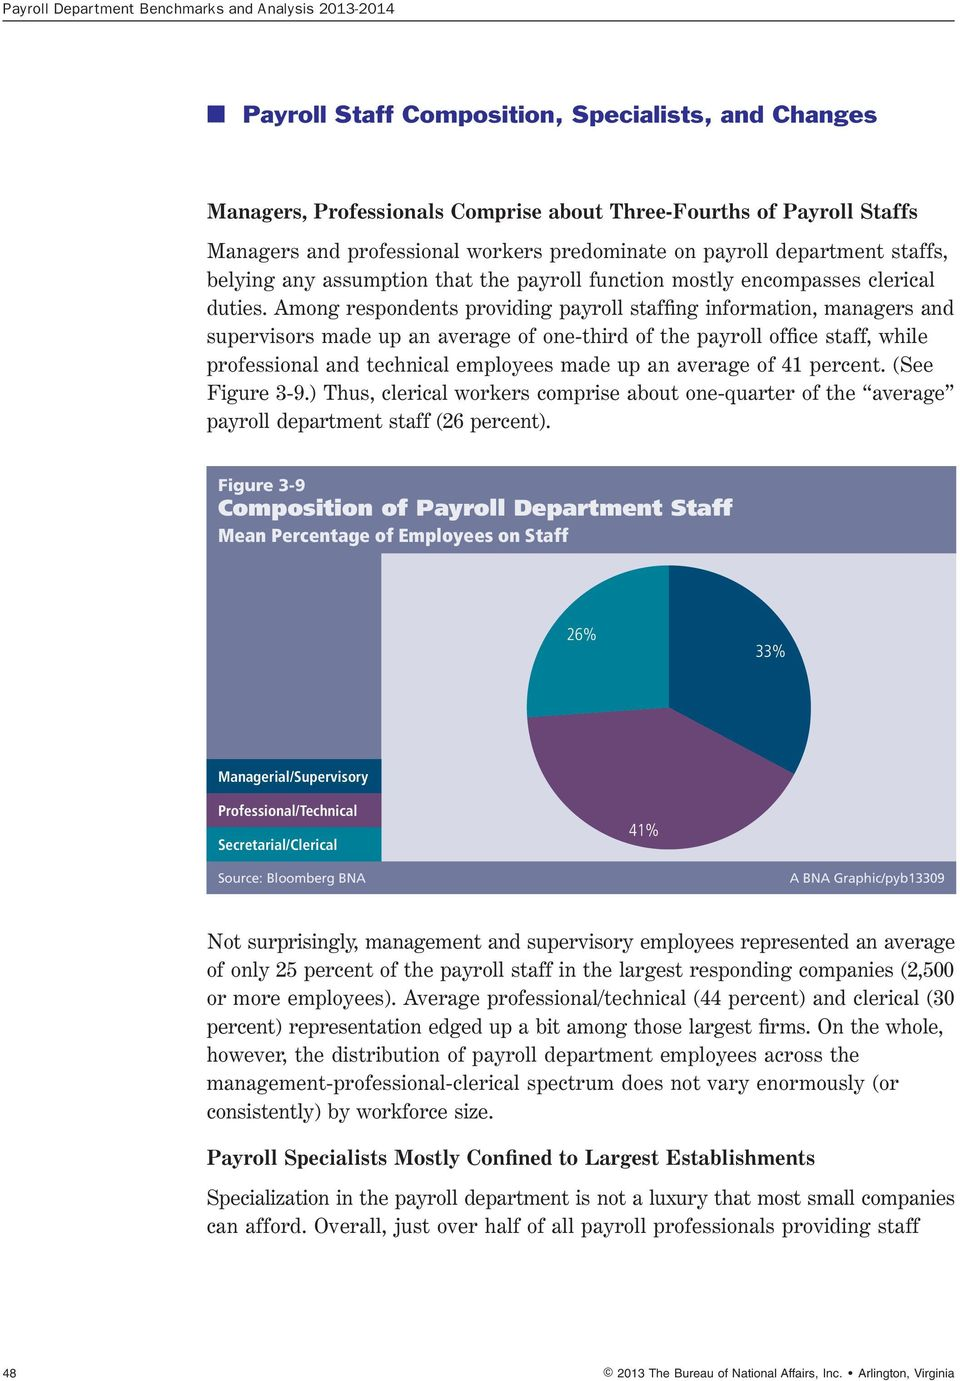 Among respondents providing payroll staffing information, managers and supervisors made up an average of one-third of the payroll office staff, while professional and technical employees made up an